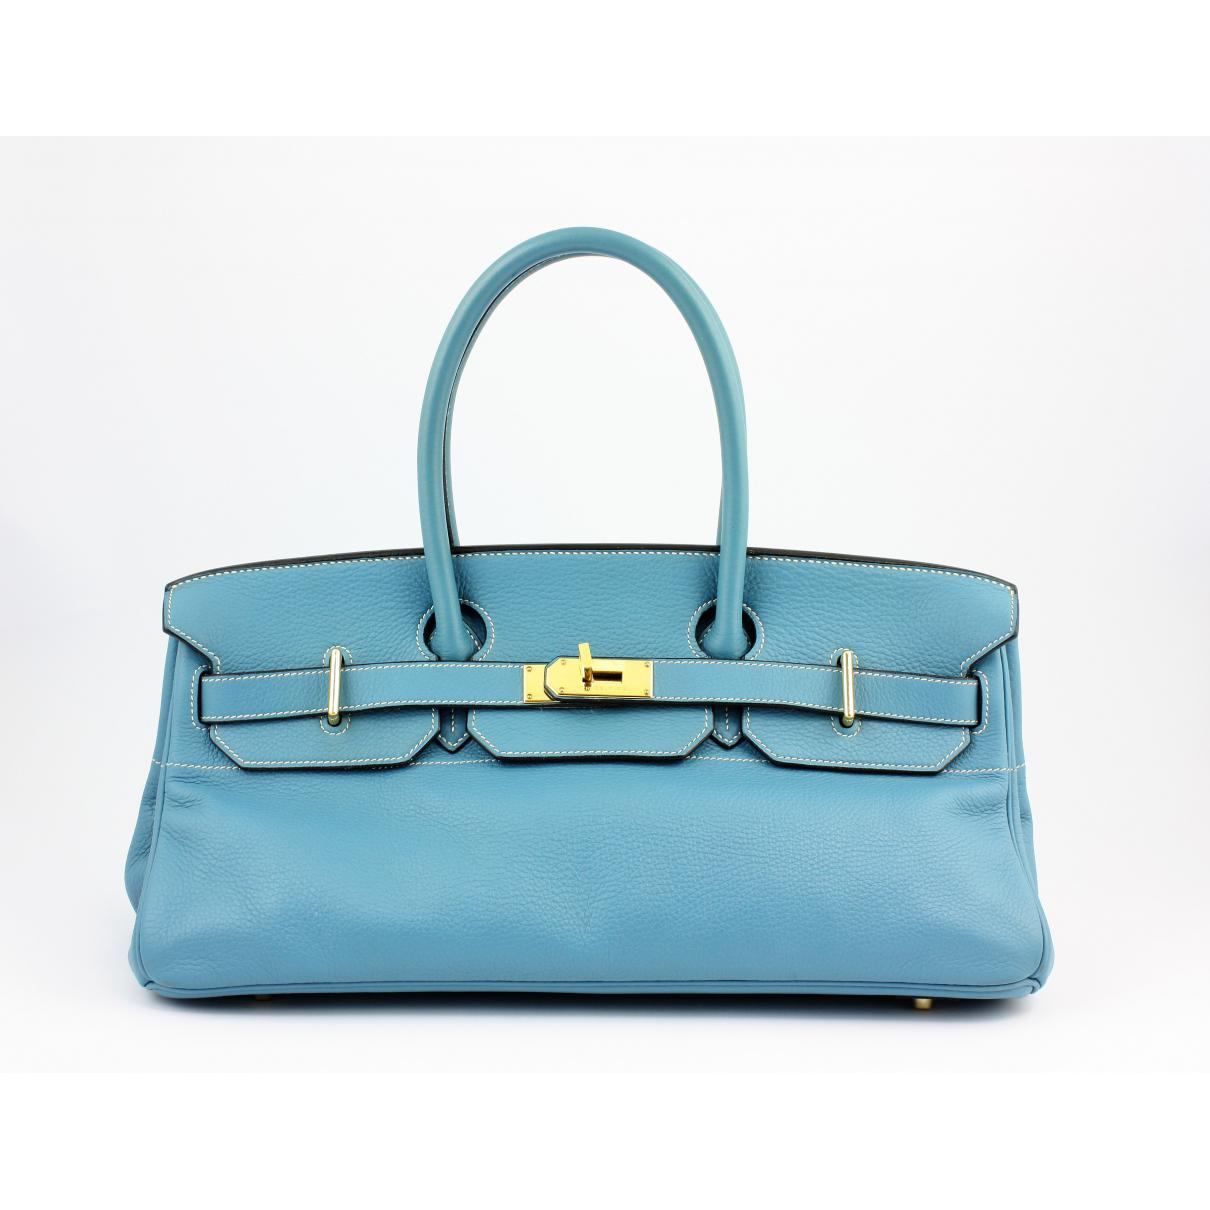 24b1638d9a17 Gallery. Previously sold at  Vestiaire Collective · Women s Leather Handbags  Women s Hermes ...